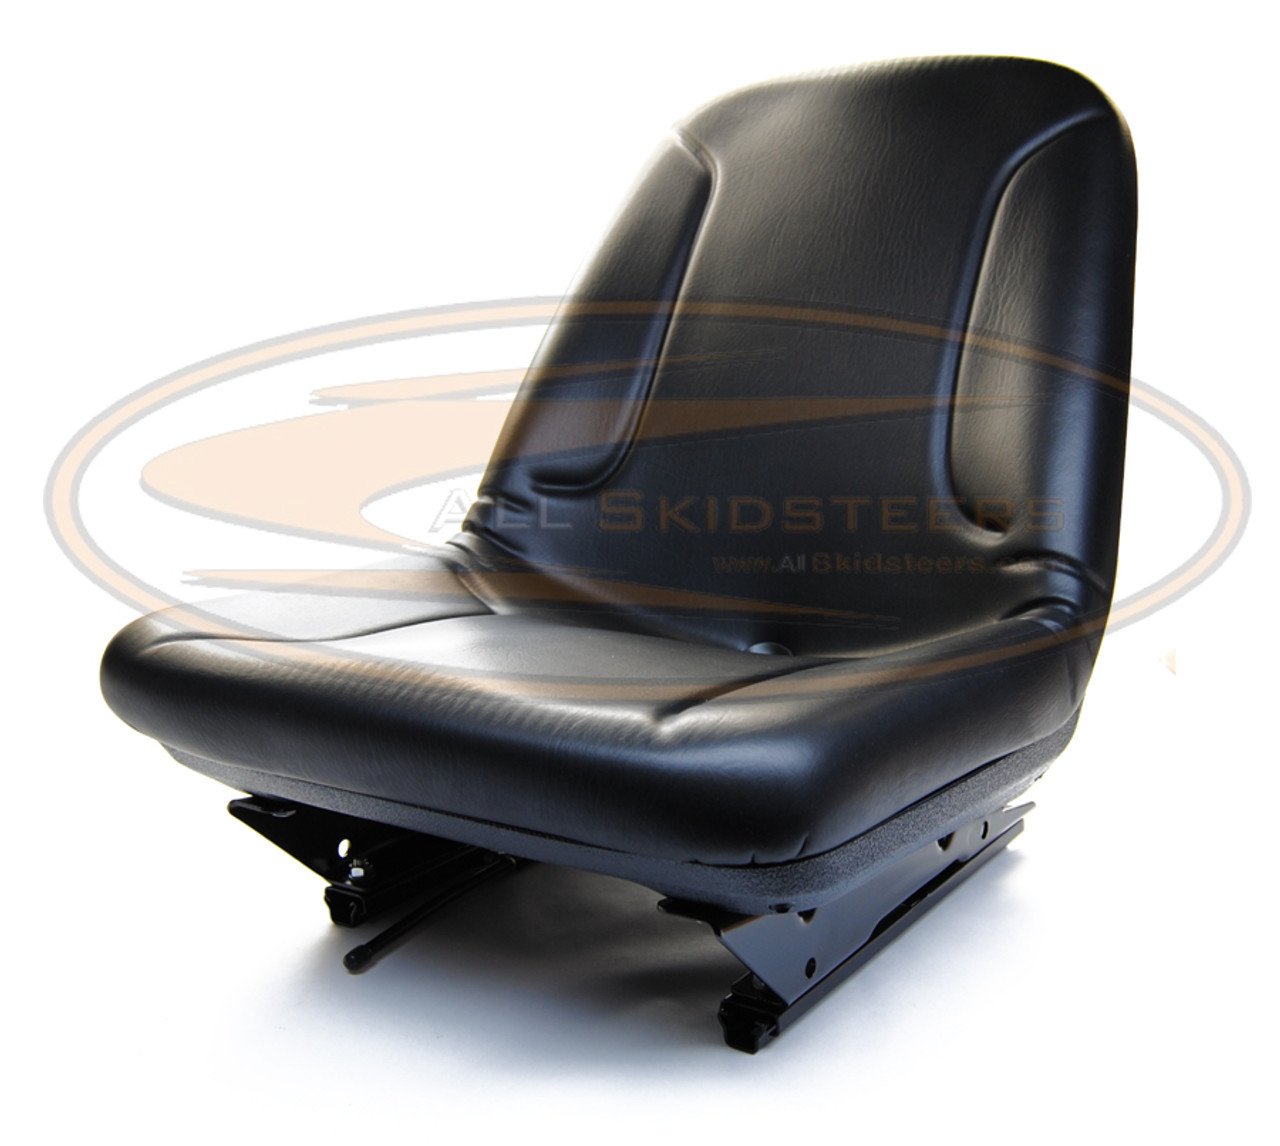 wiring diagram seat on new new holland skid steer cab seat w sliding tracks black on new new holland ls180  [ 1280 x 1146 Pixel ]